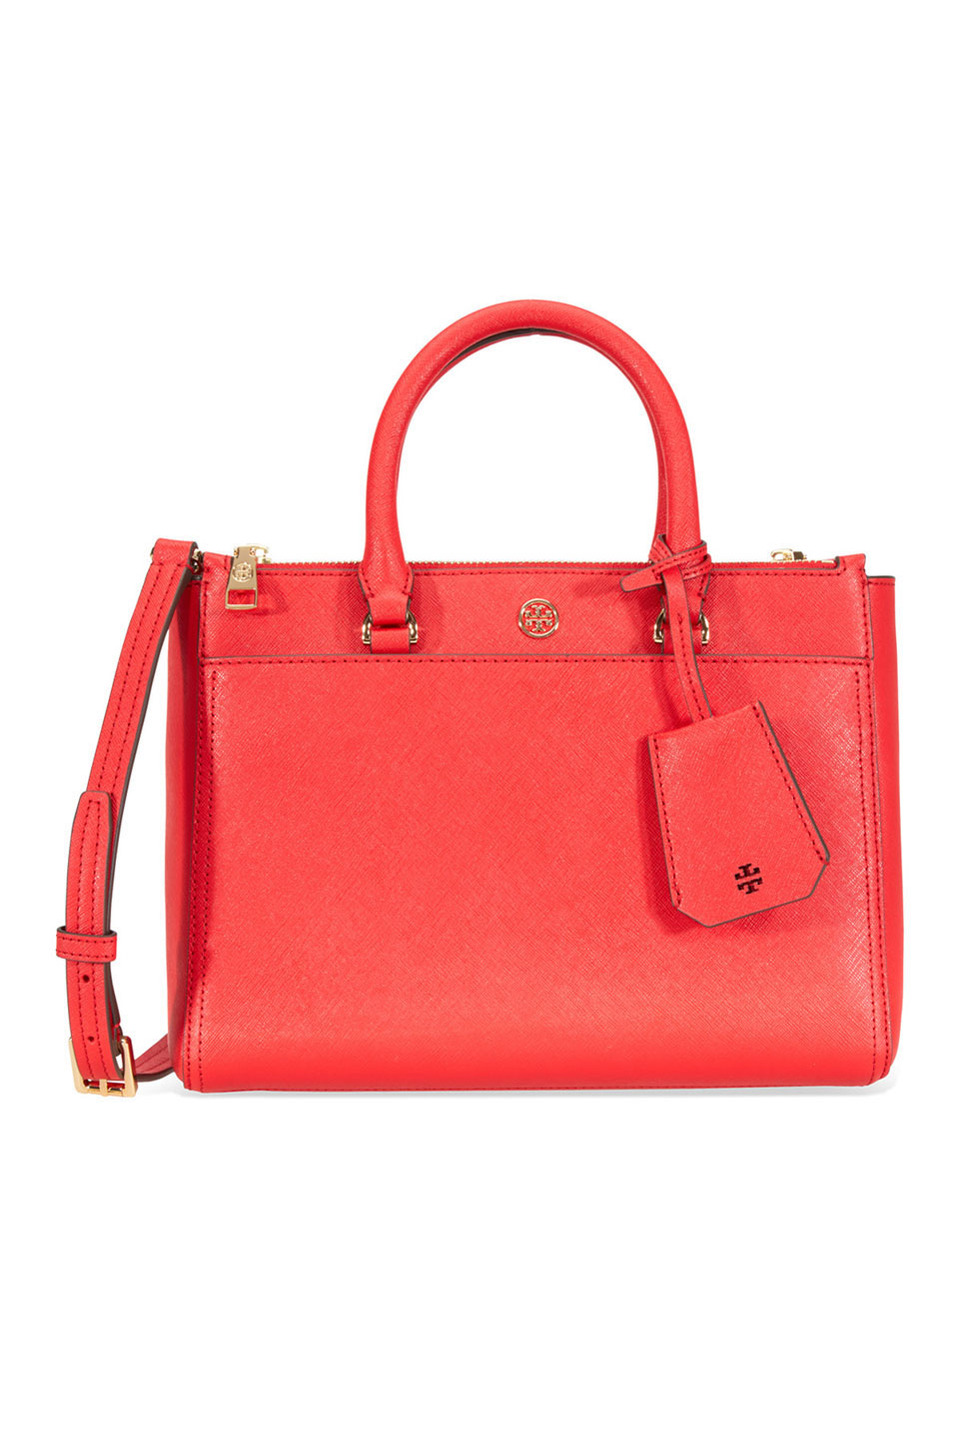 Robinson Small Double-Zip Tote in Red